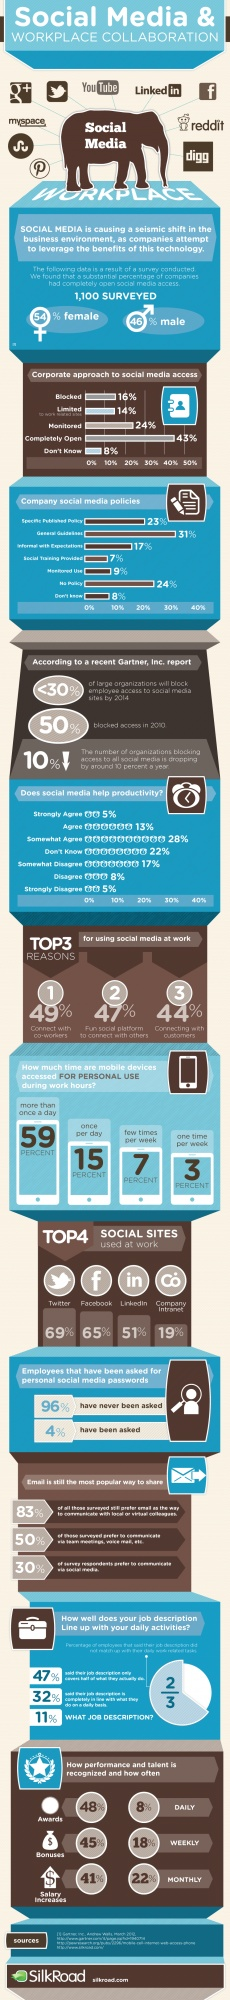 Infographic: Social Media & Workplace Collaboration